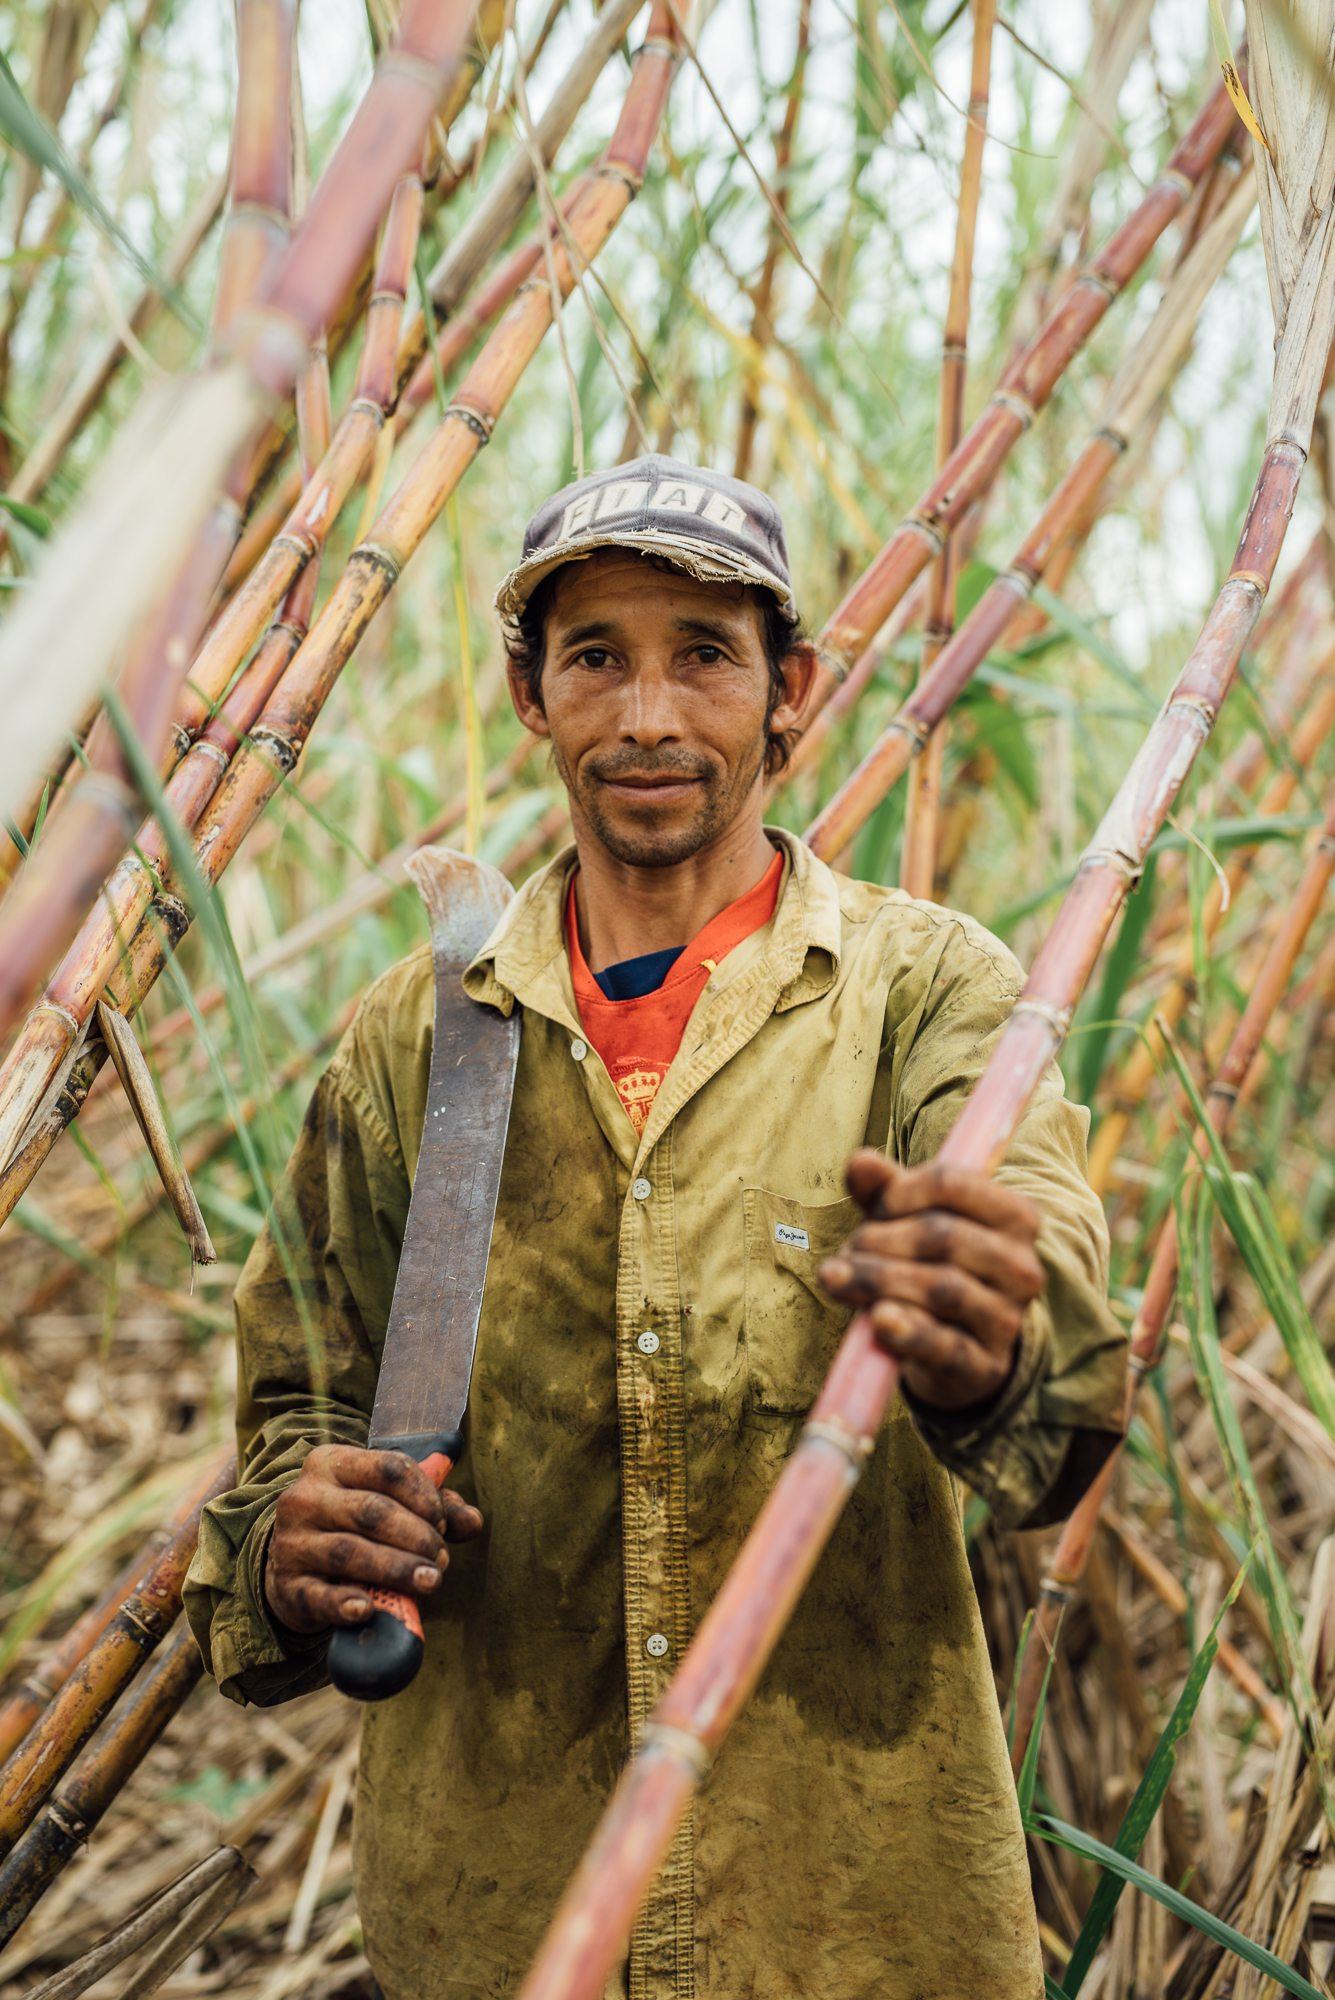 Almost all sugarcane at ASOCAZE is still being cut by hand with machetes.